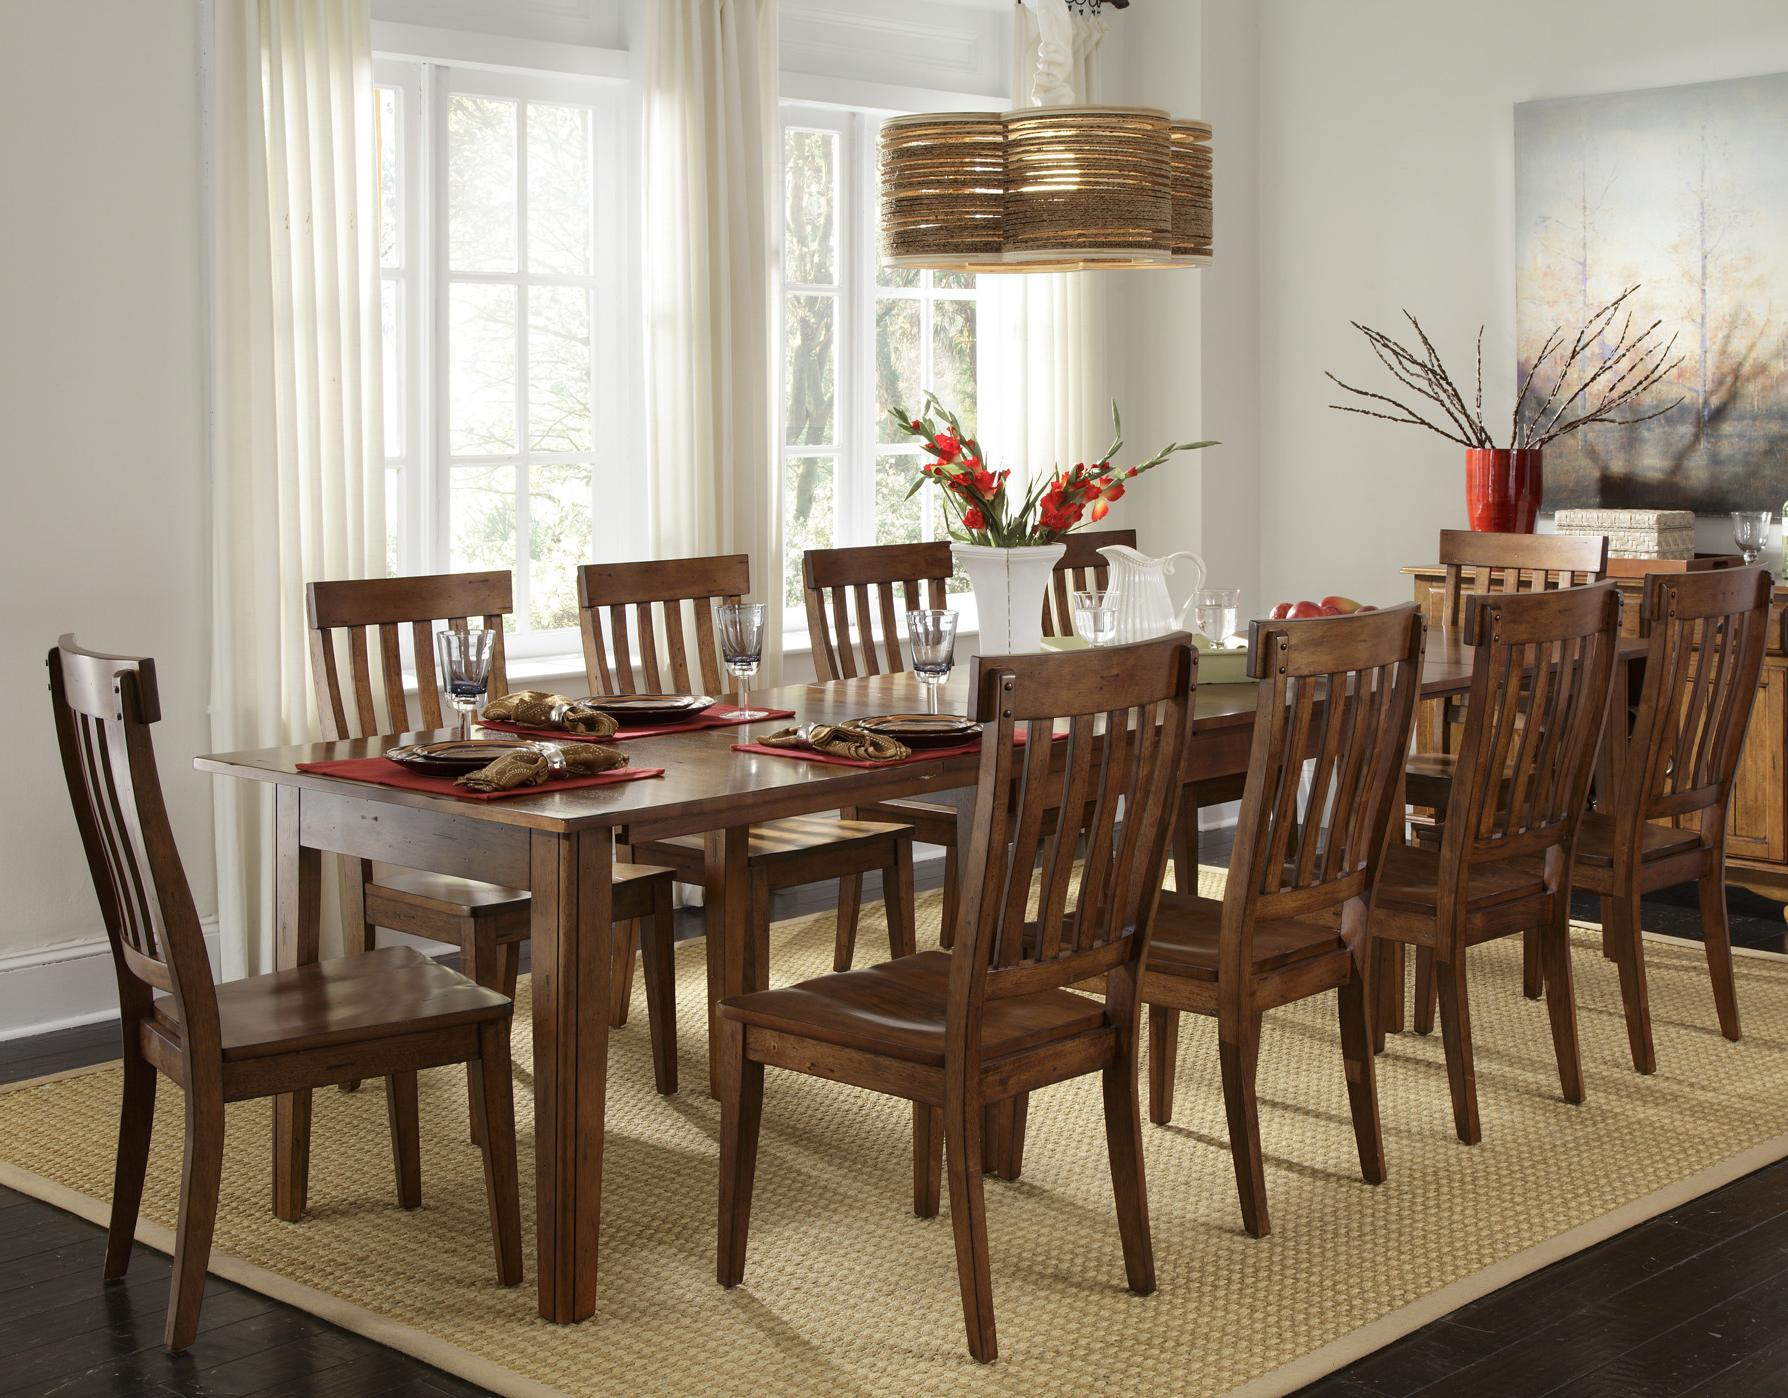 Toluca 7 Piece Set by A-A at Walker's Furniture